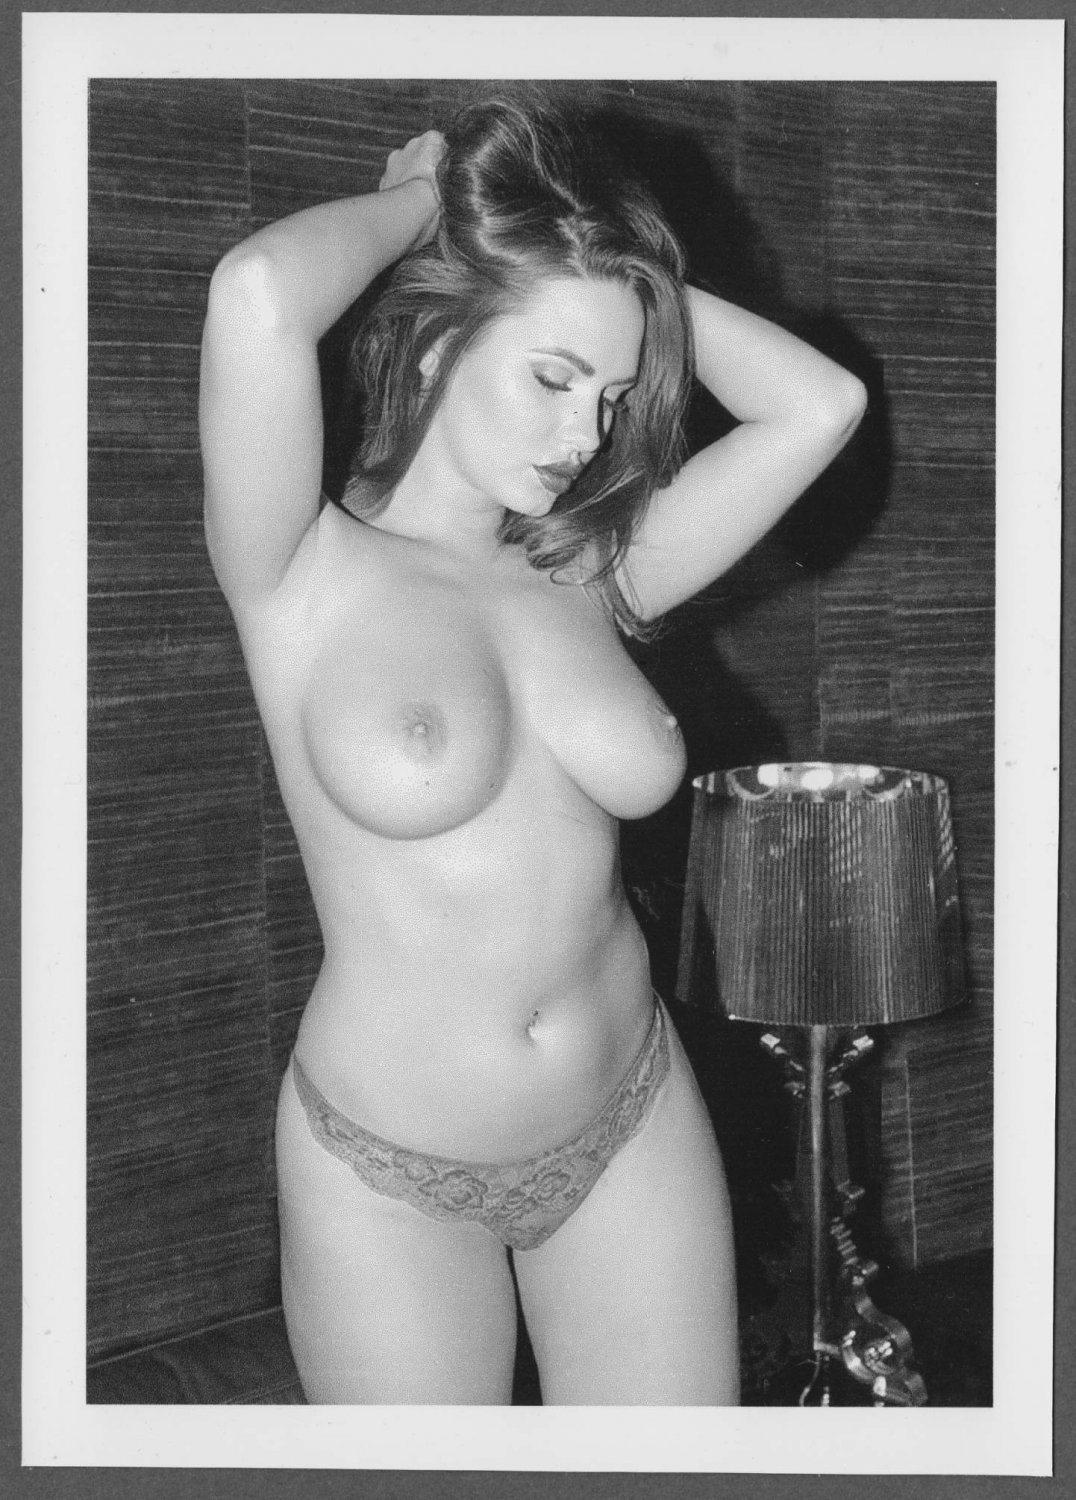 HOT BUSTY BABE NUDE BIG BOOBS POSE NEW REPRINT PHOTO 5 X 7  #65A